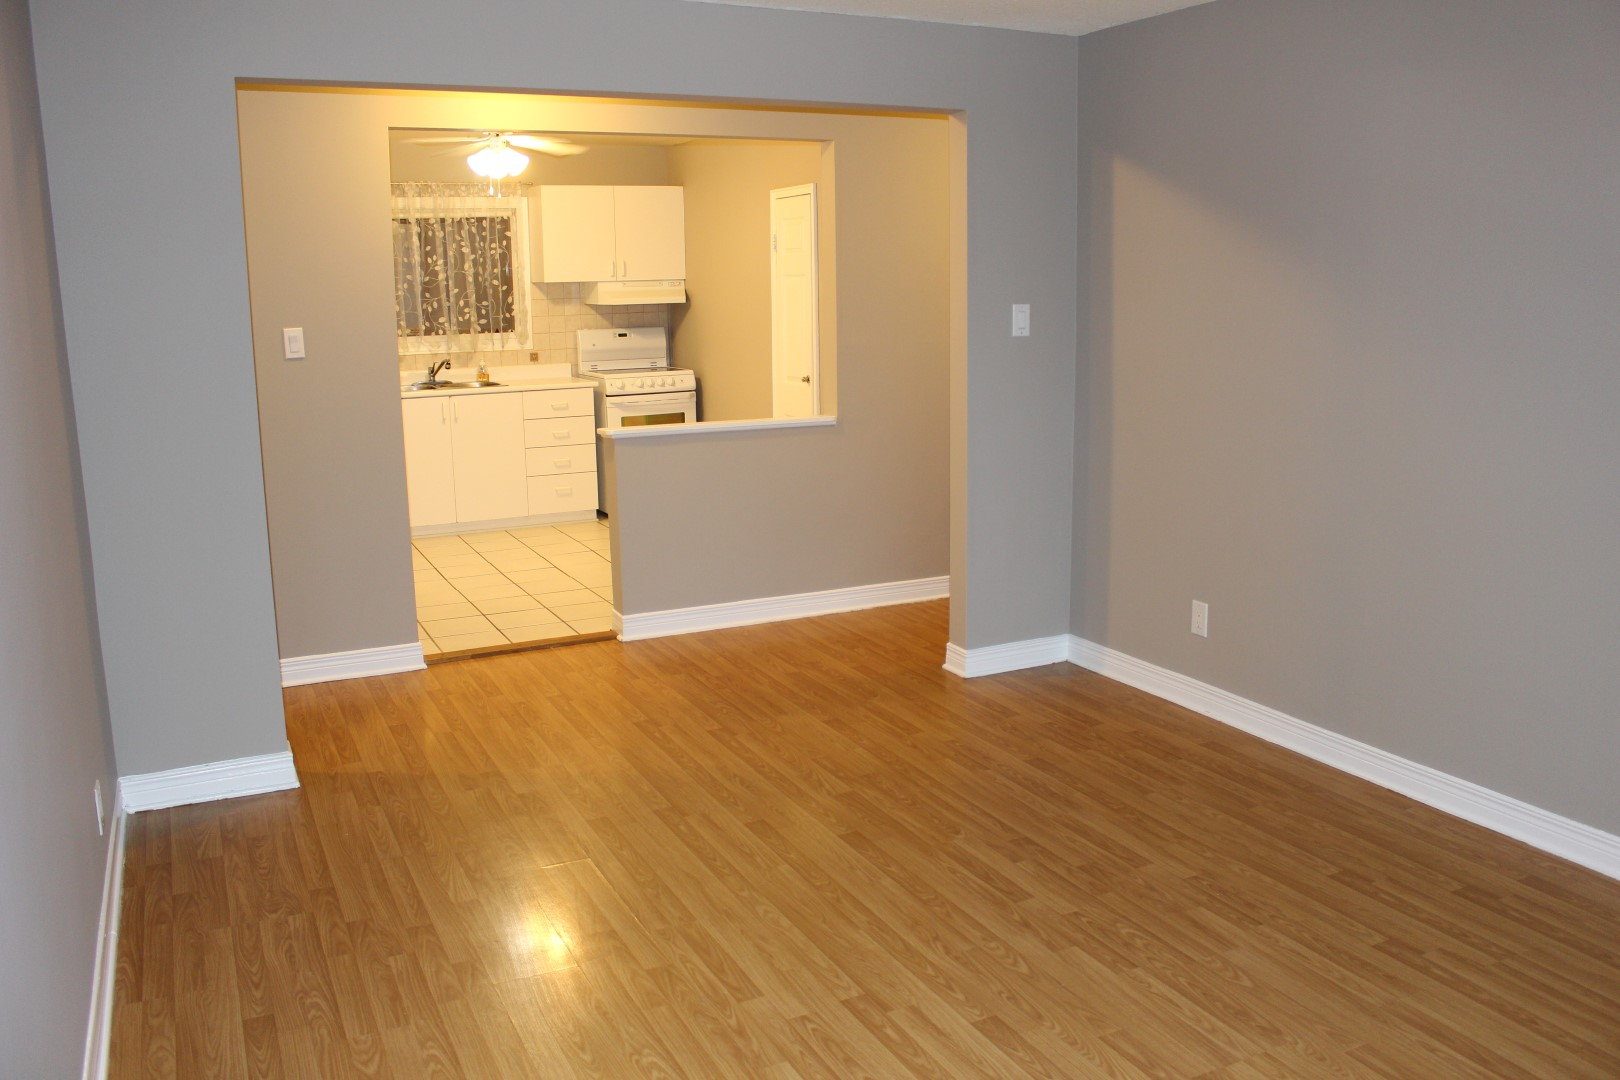 Spacious 2 bedroom rental in Beechwood Village! ** #B17A1A